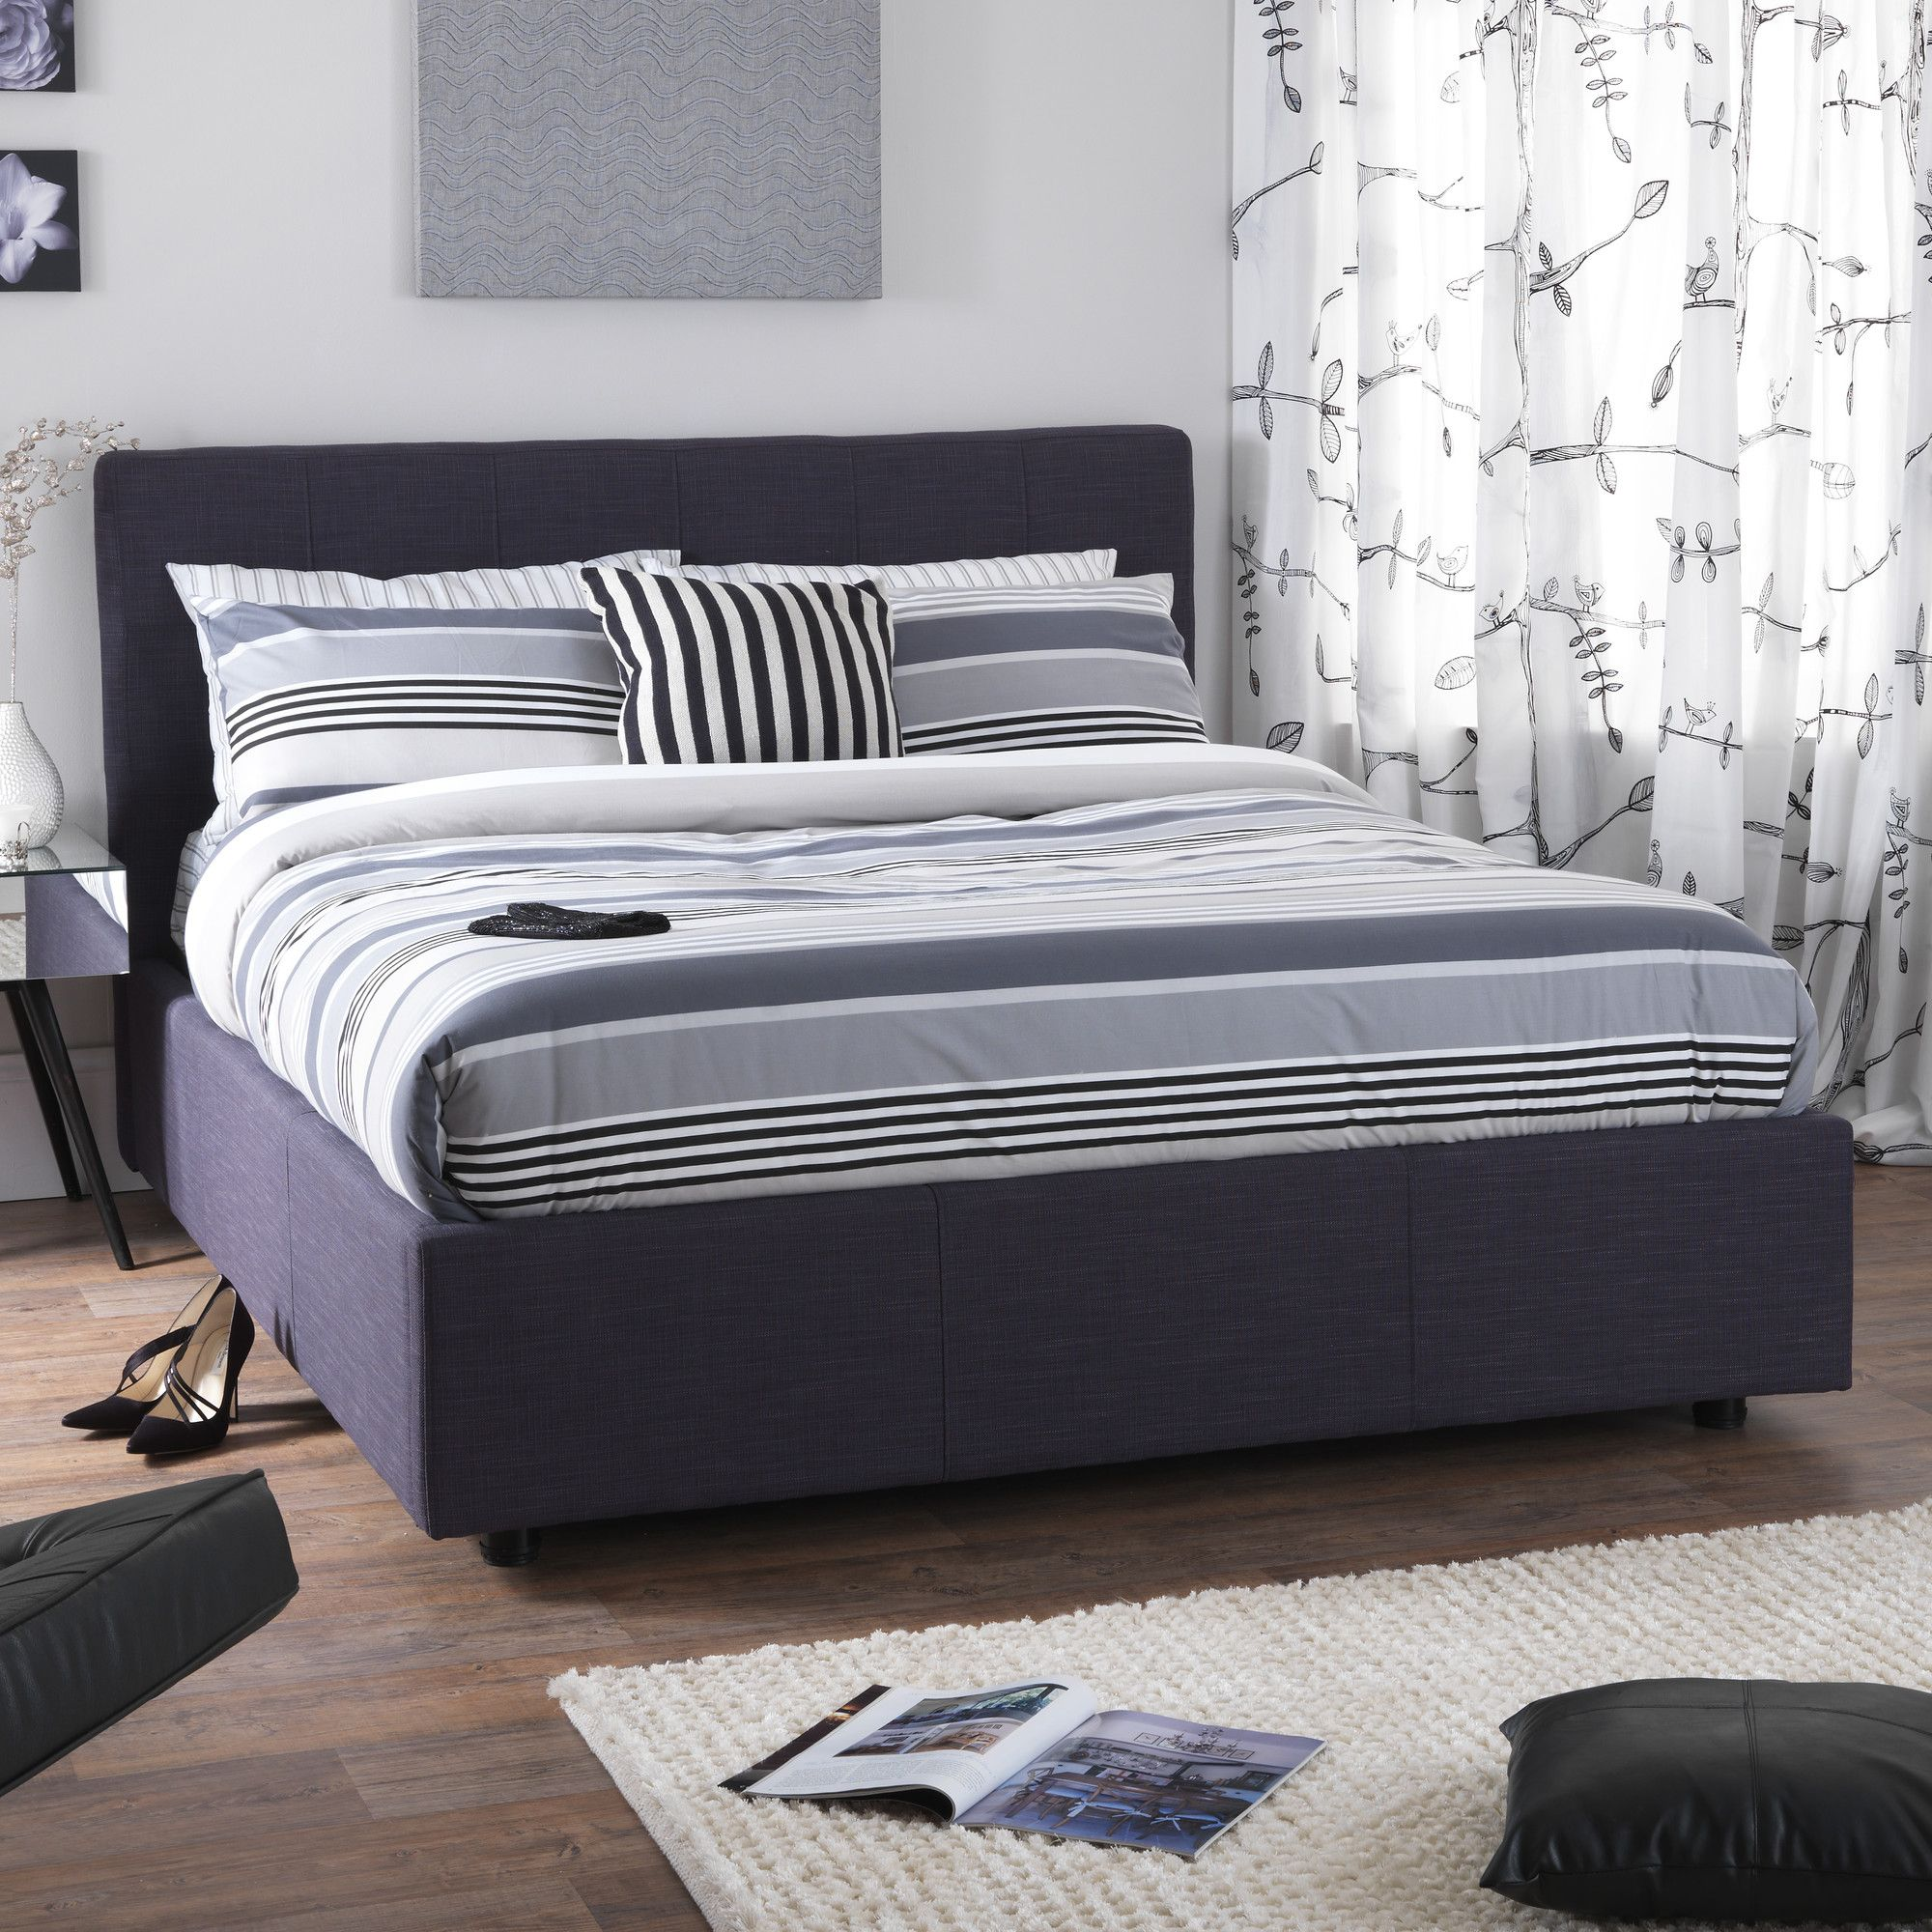 Serene Furnishings Lucca Ottoman Bed - Oxford Blue - Double at Tesco Direct